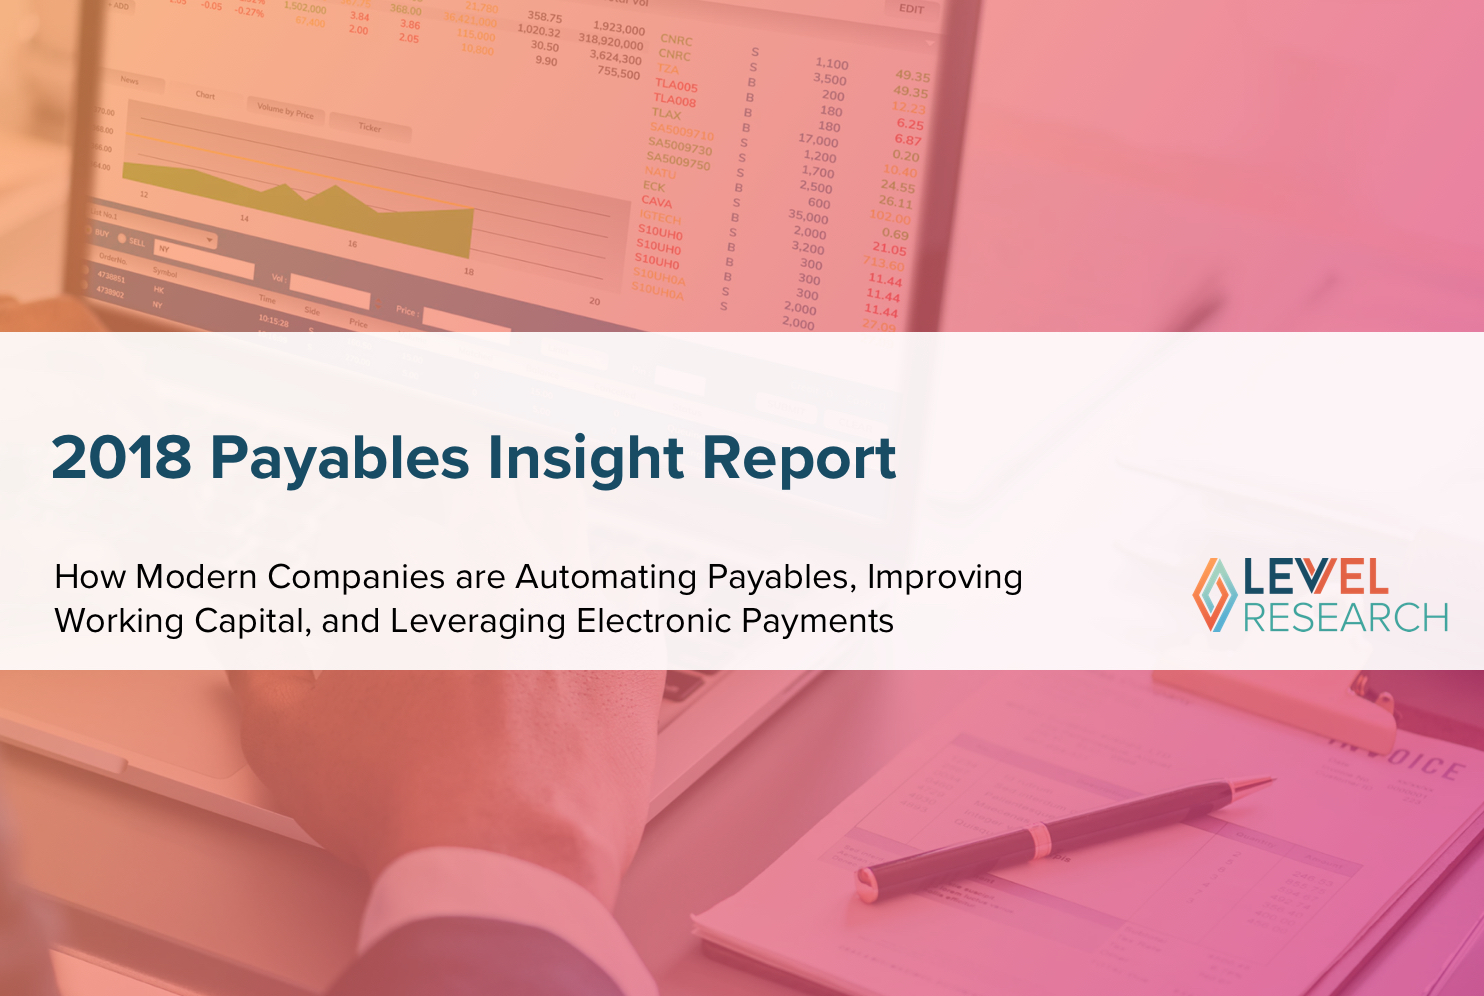 2018 Payables Insight Report